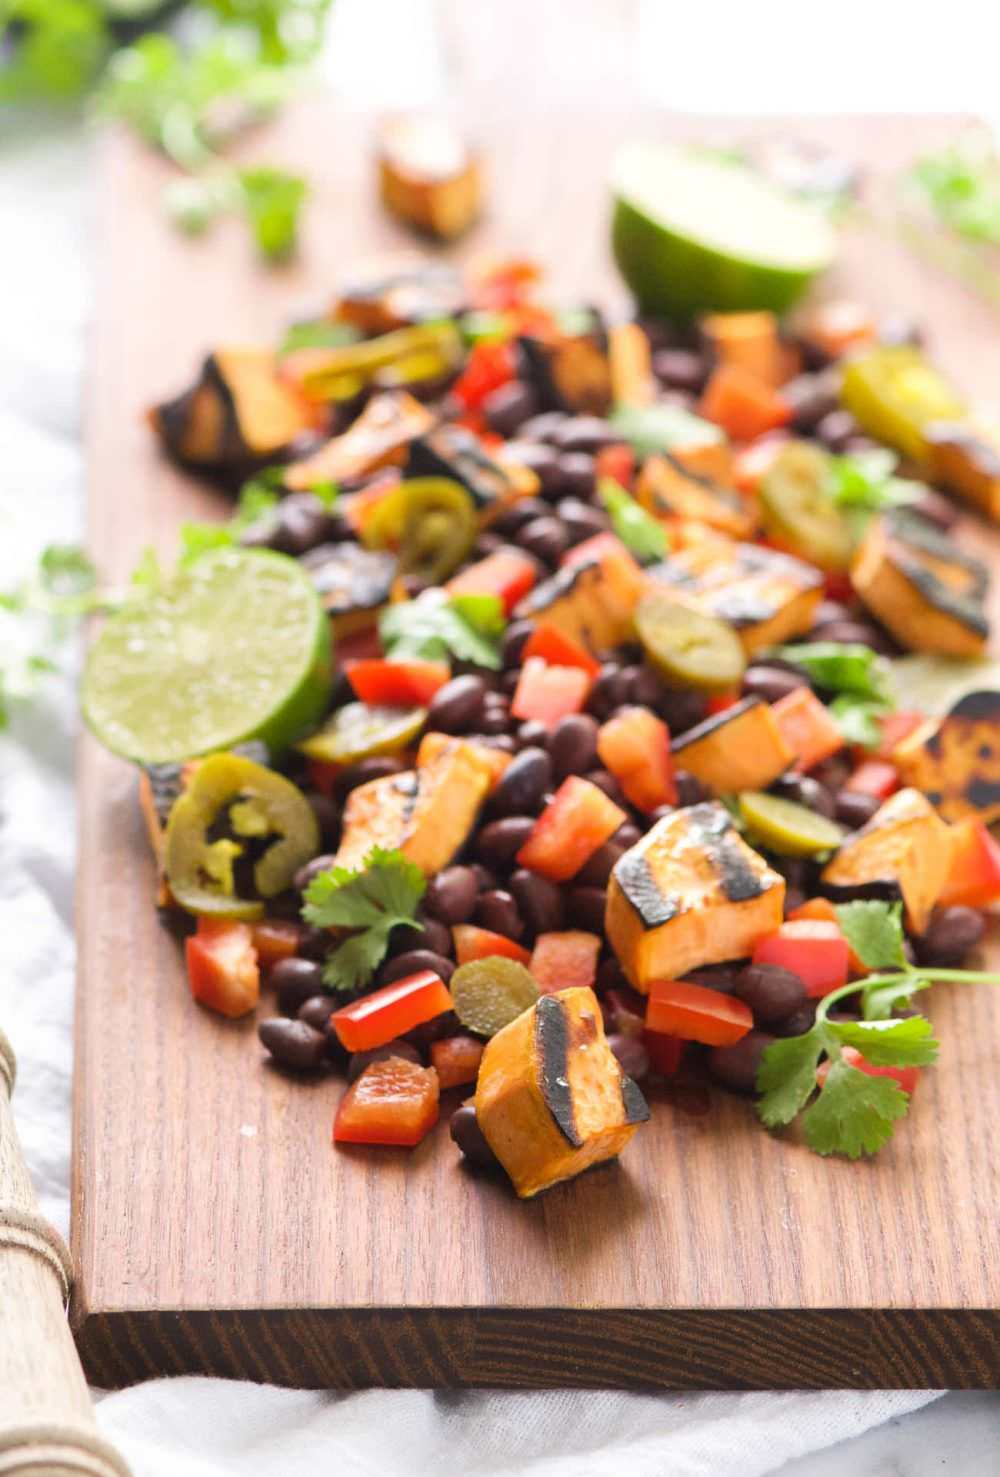 Take your dinner outside with this Southwestern Grilled Sweet Potato Salad! Sweet potatoes caramelize on the grill and then mixed with black beans, charred corn, jalapenos, red pepper, onion and dressed with lime and cilantro. Try it hot off the grill or chilled - can't go wrong either way!